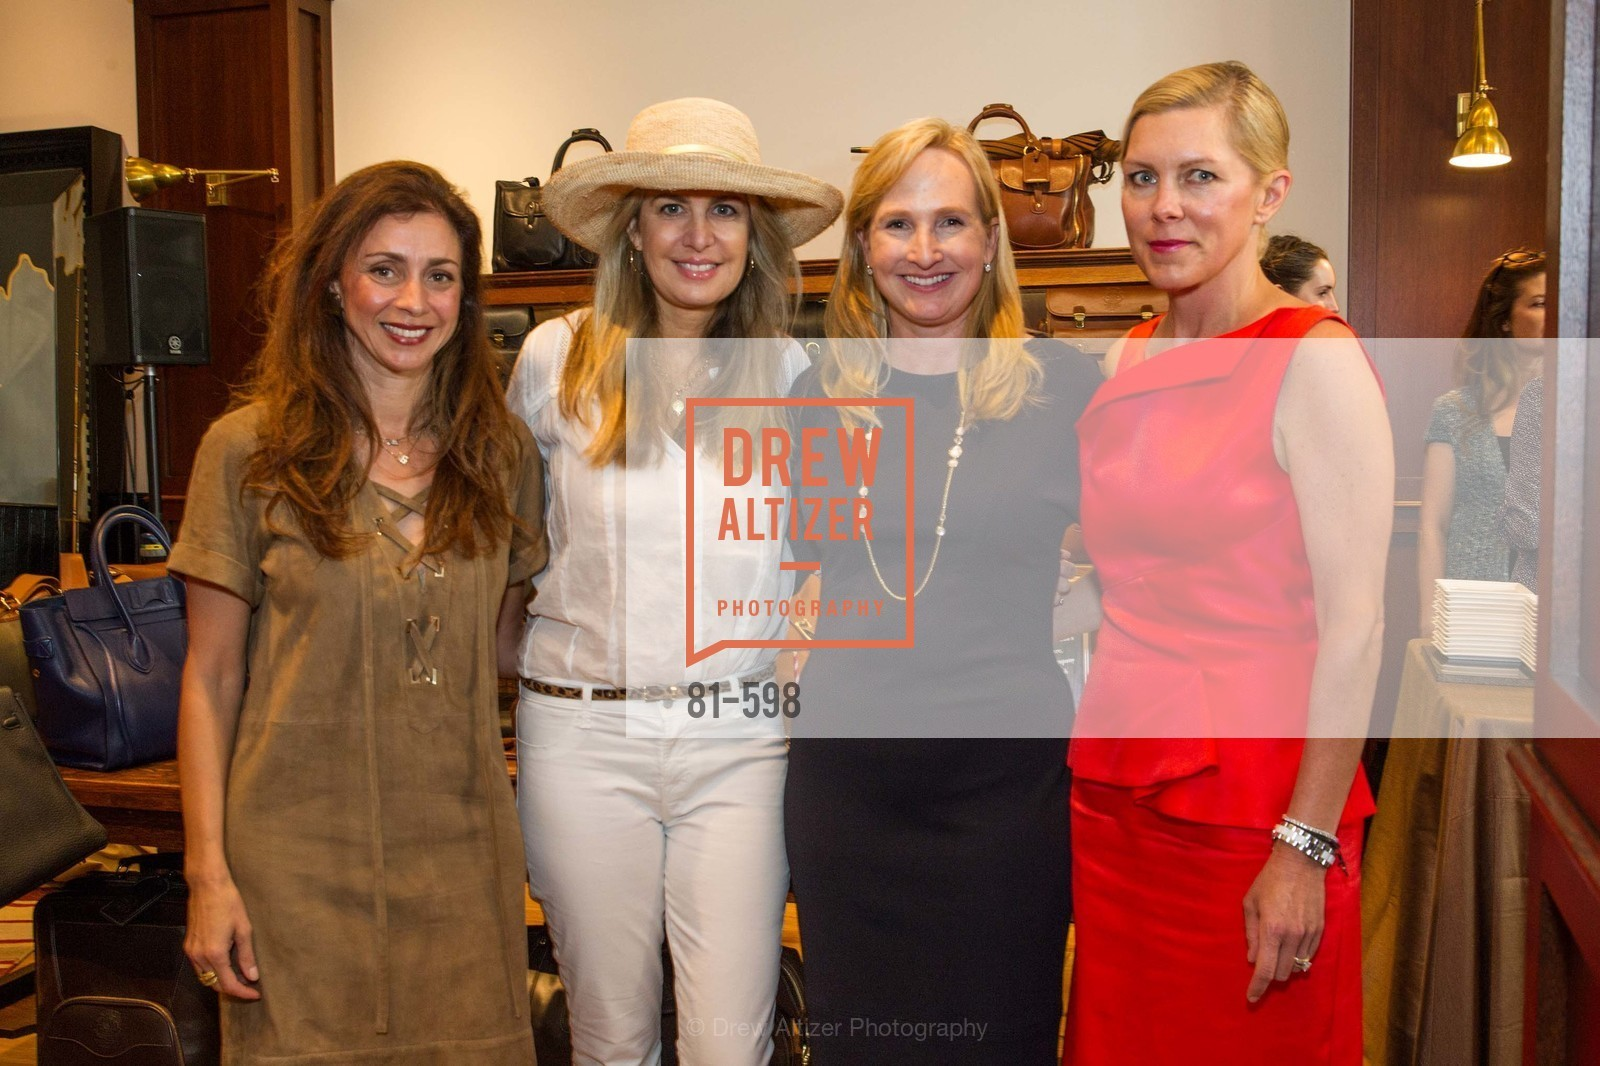 Maryam Muduroglu, Suzanne Levit, Anne Pedrero, Molly Farrell, GHURKA FALL FASHION Press Preview Honoring the ZOO BOARD, US, October 7th, 2014,Drew Altizer, Drew Altizer Photography, full-service agency, private events, San Francisco photographer, photographer california